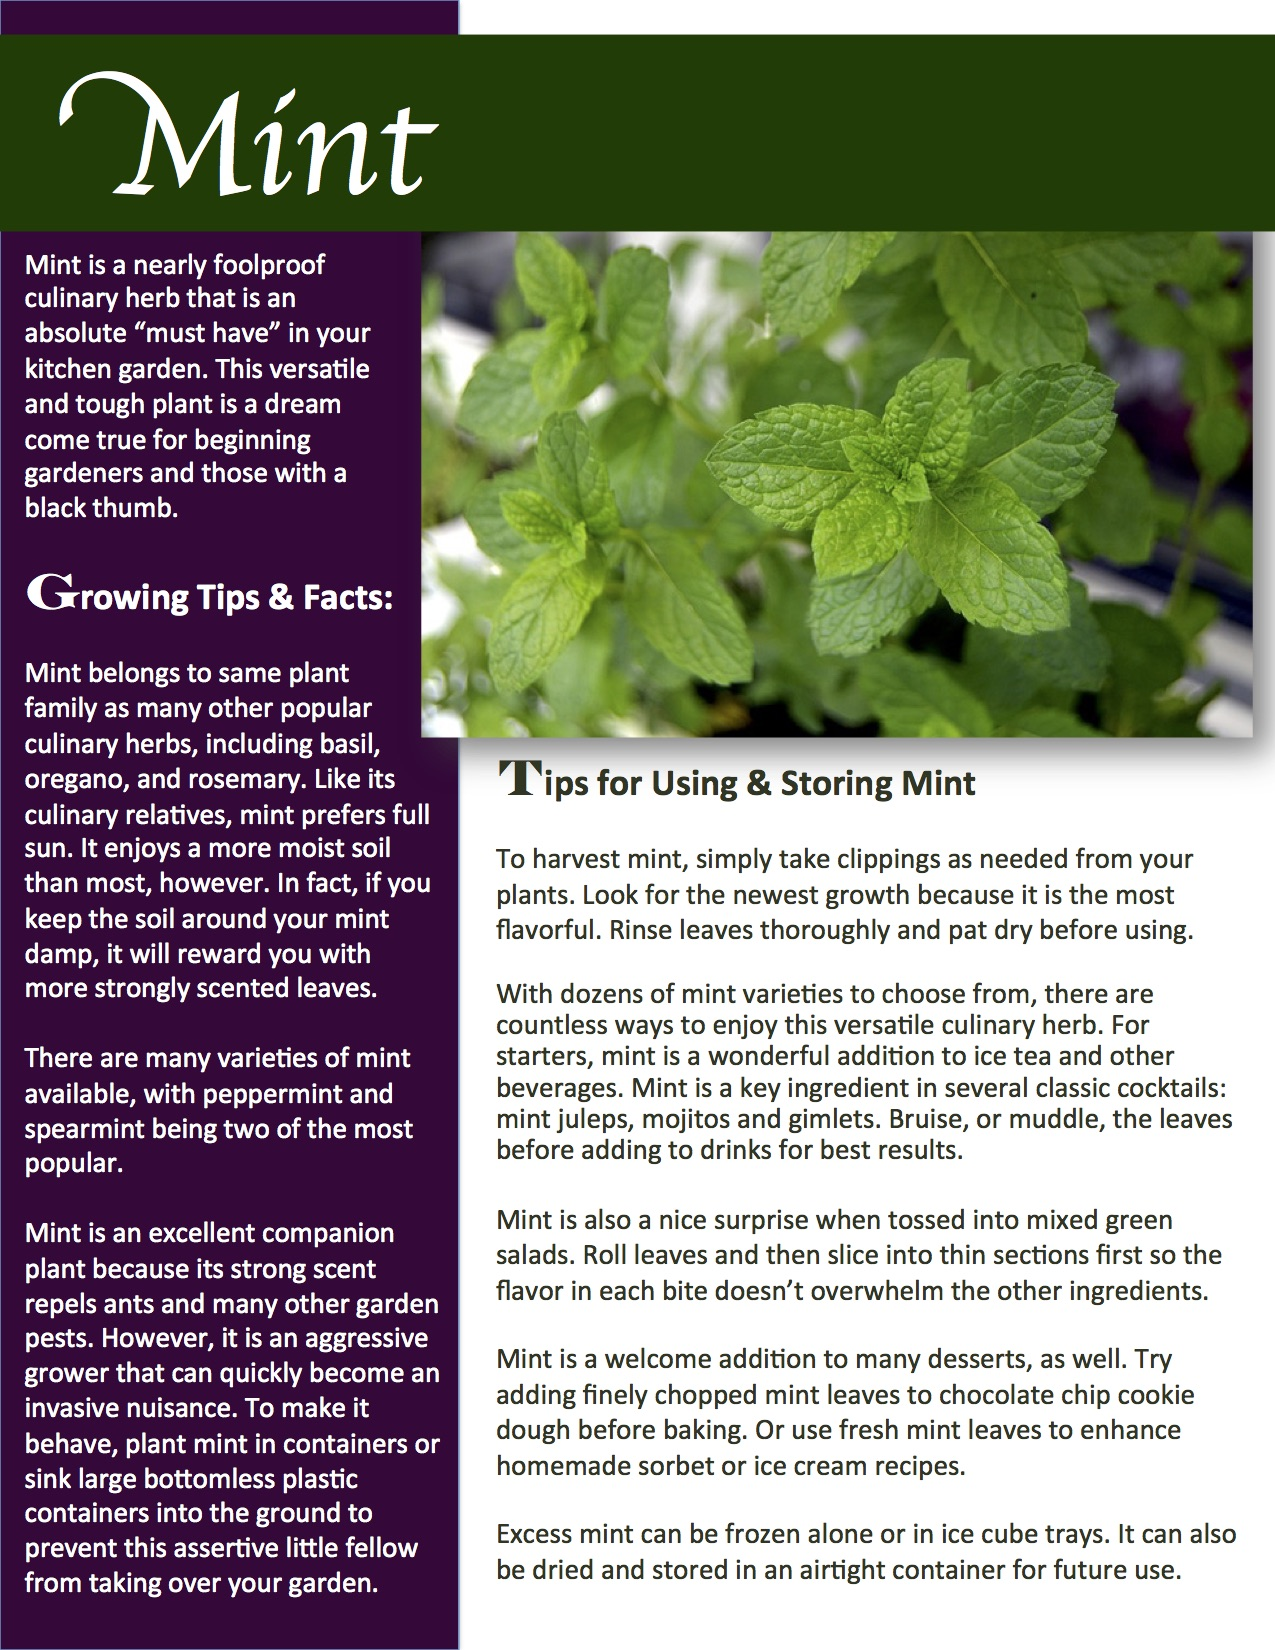 Do mint leaves repel ants